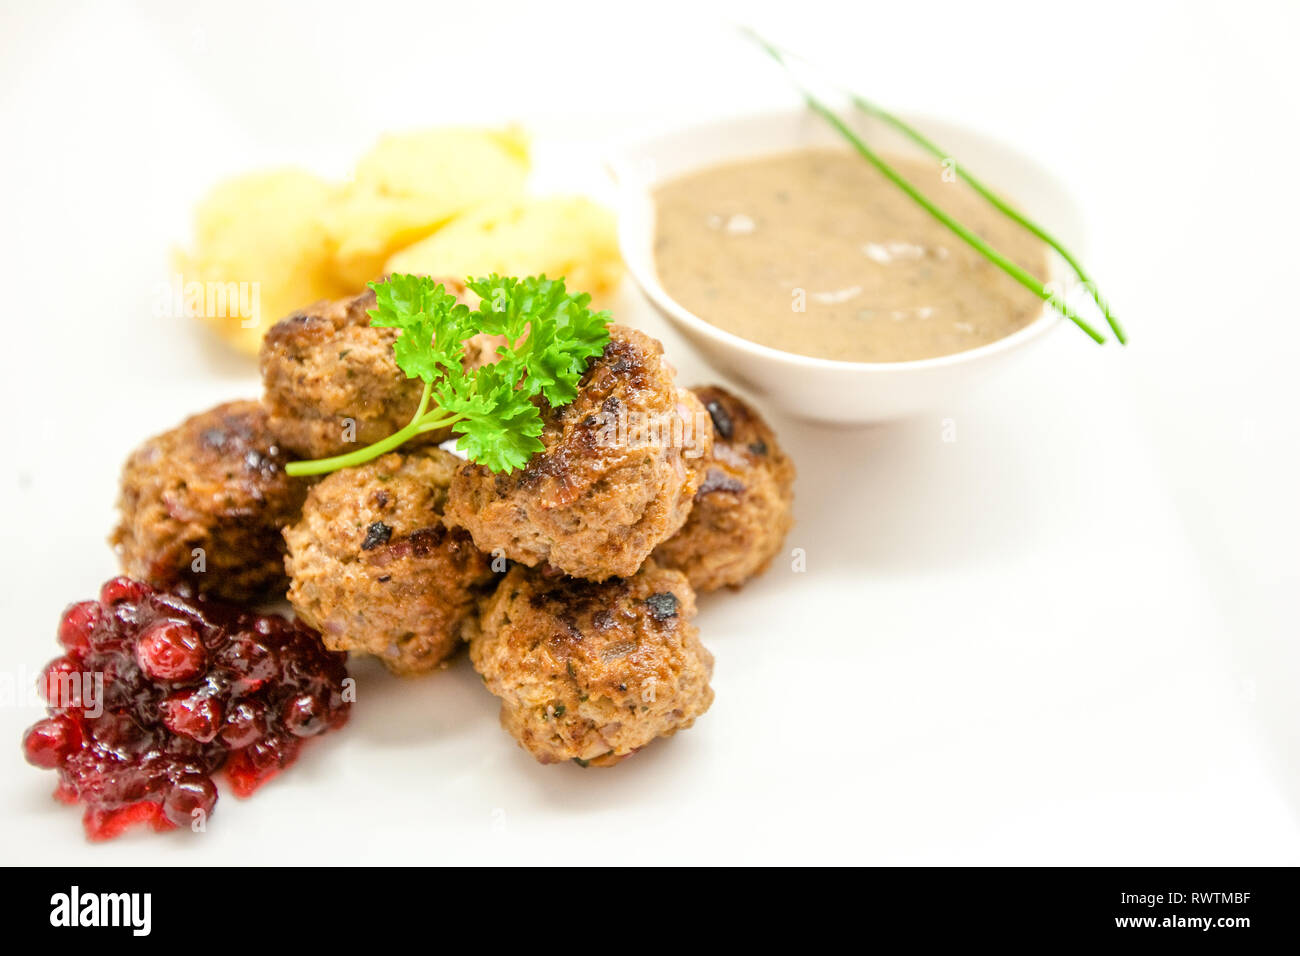 Meatballs stewed with vegetables on white background Stock Photo